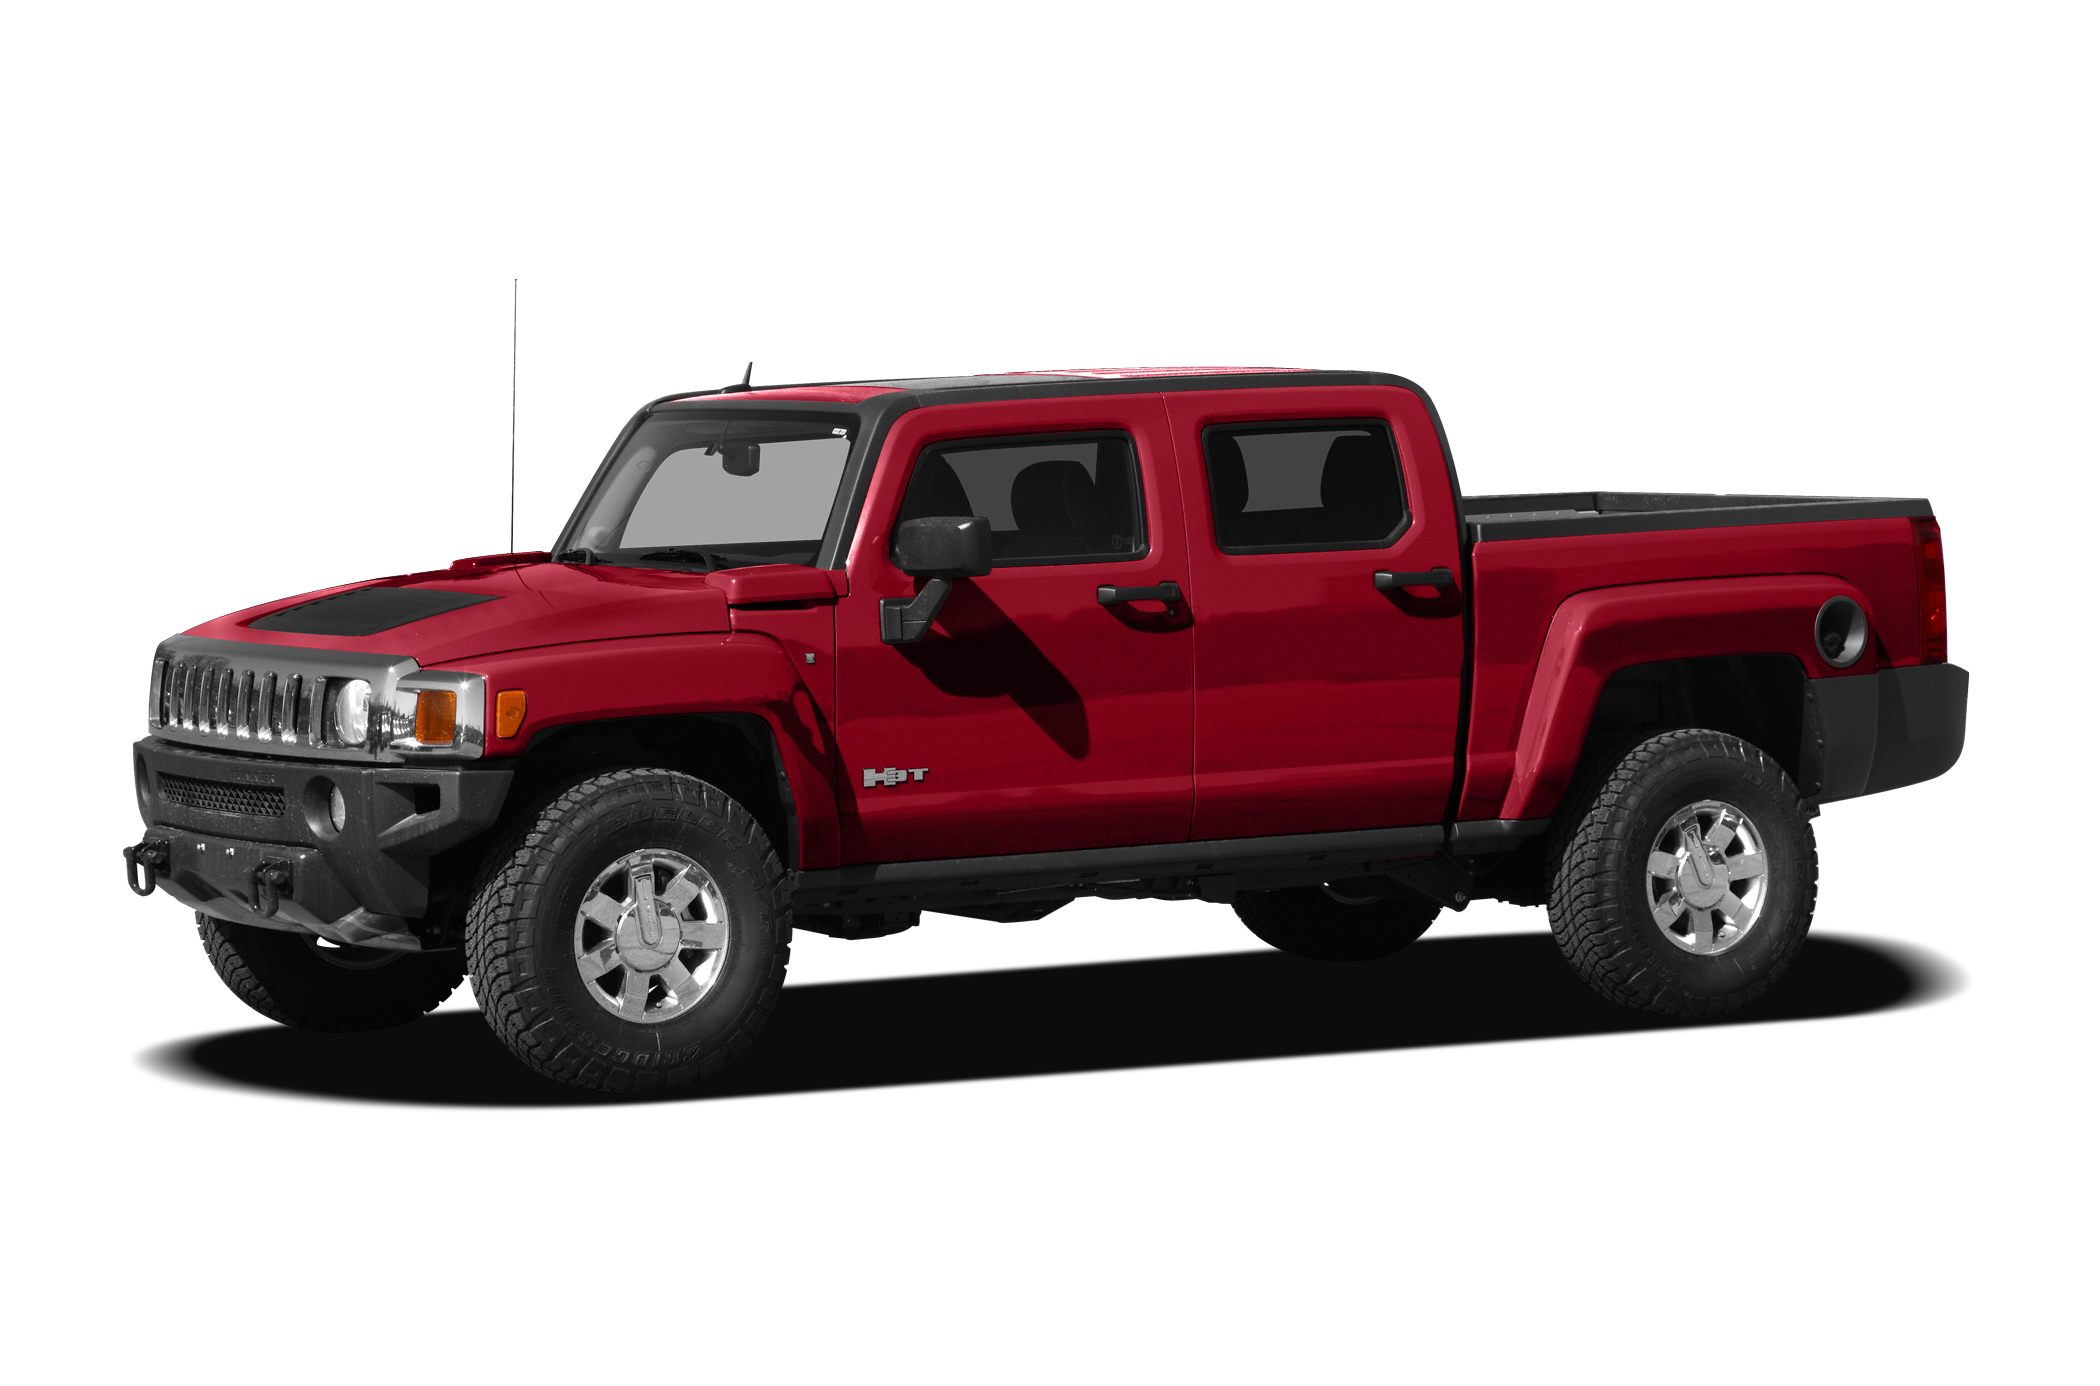 2009 HUMMER H3T Alpha All wheel Drive Crew Cab 134 2 in WB Specs